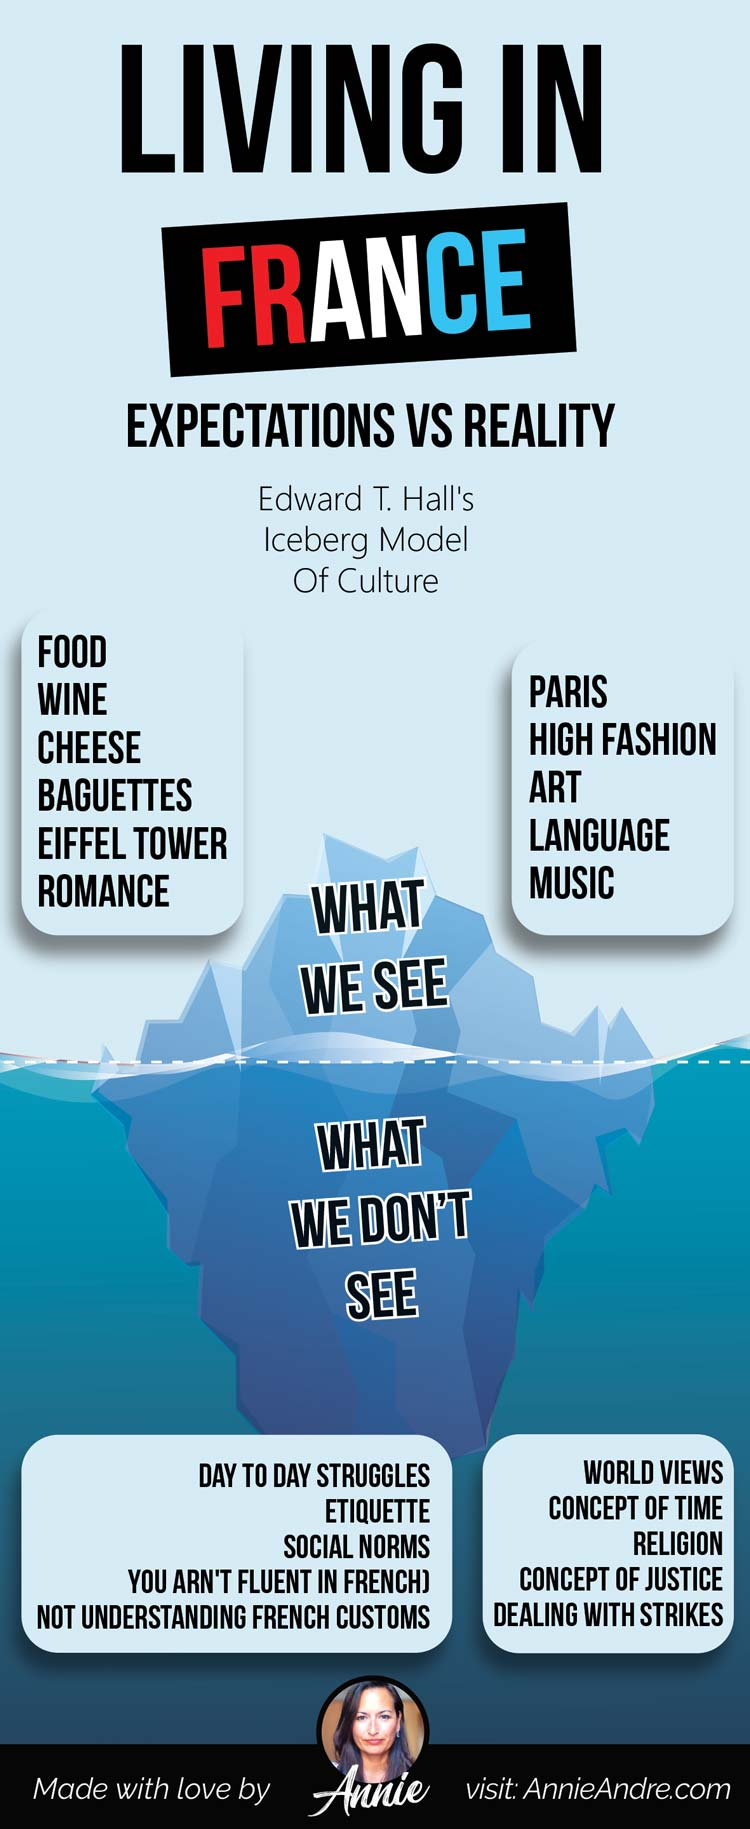 Edward T. Hall's Iceberg Model Of Culture: